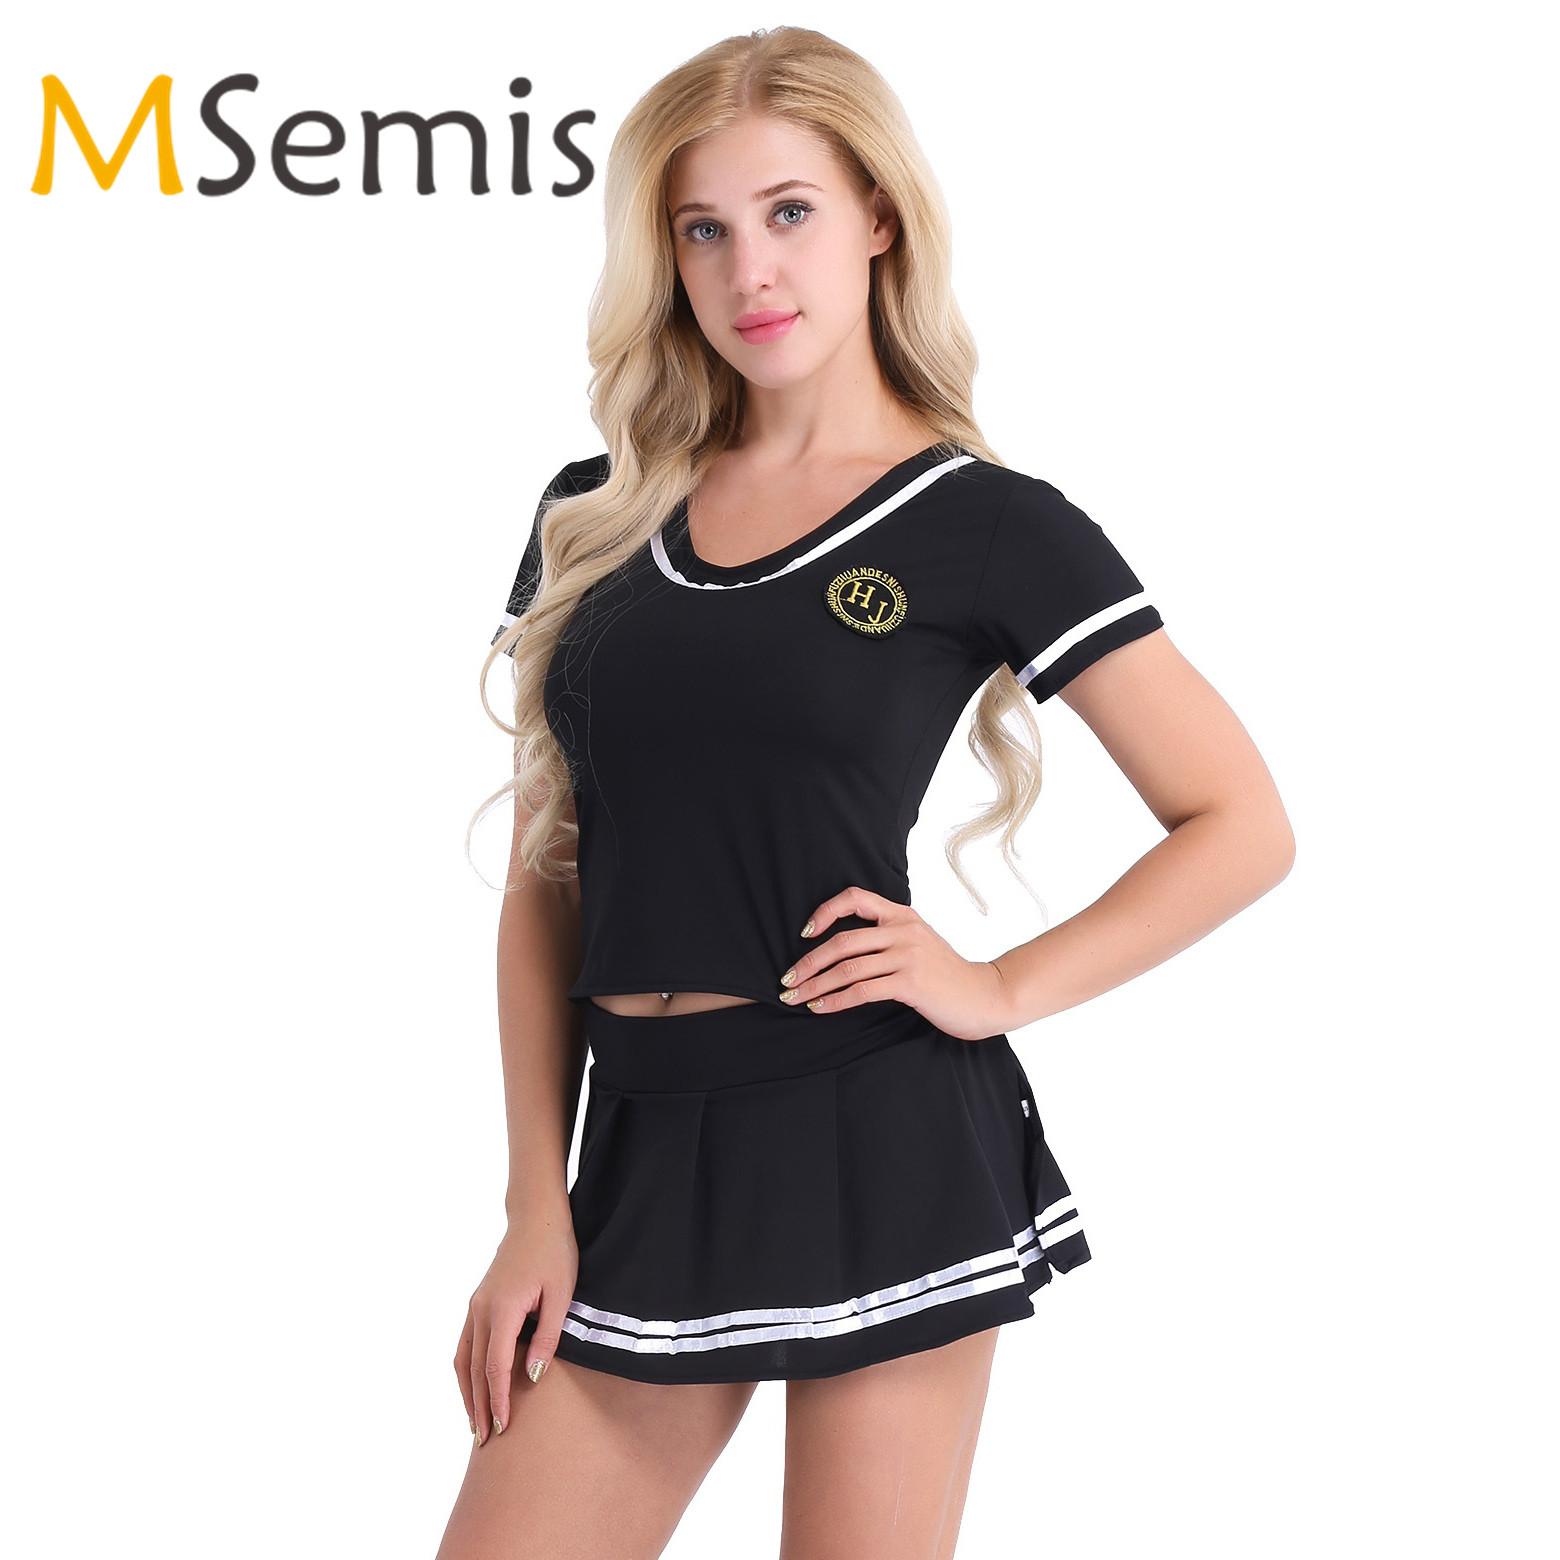 Women Girls Cheerleader Costume Lingerie Cheerleading T-shirt Top With Mini Skirt And G-string Underwear Sailor Sports Costume